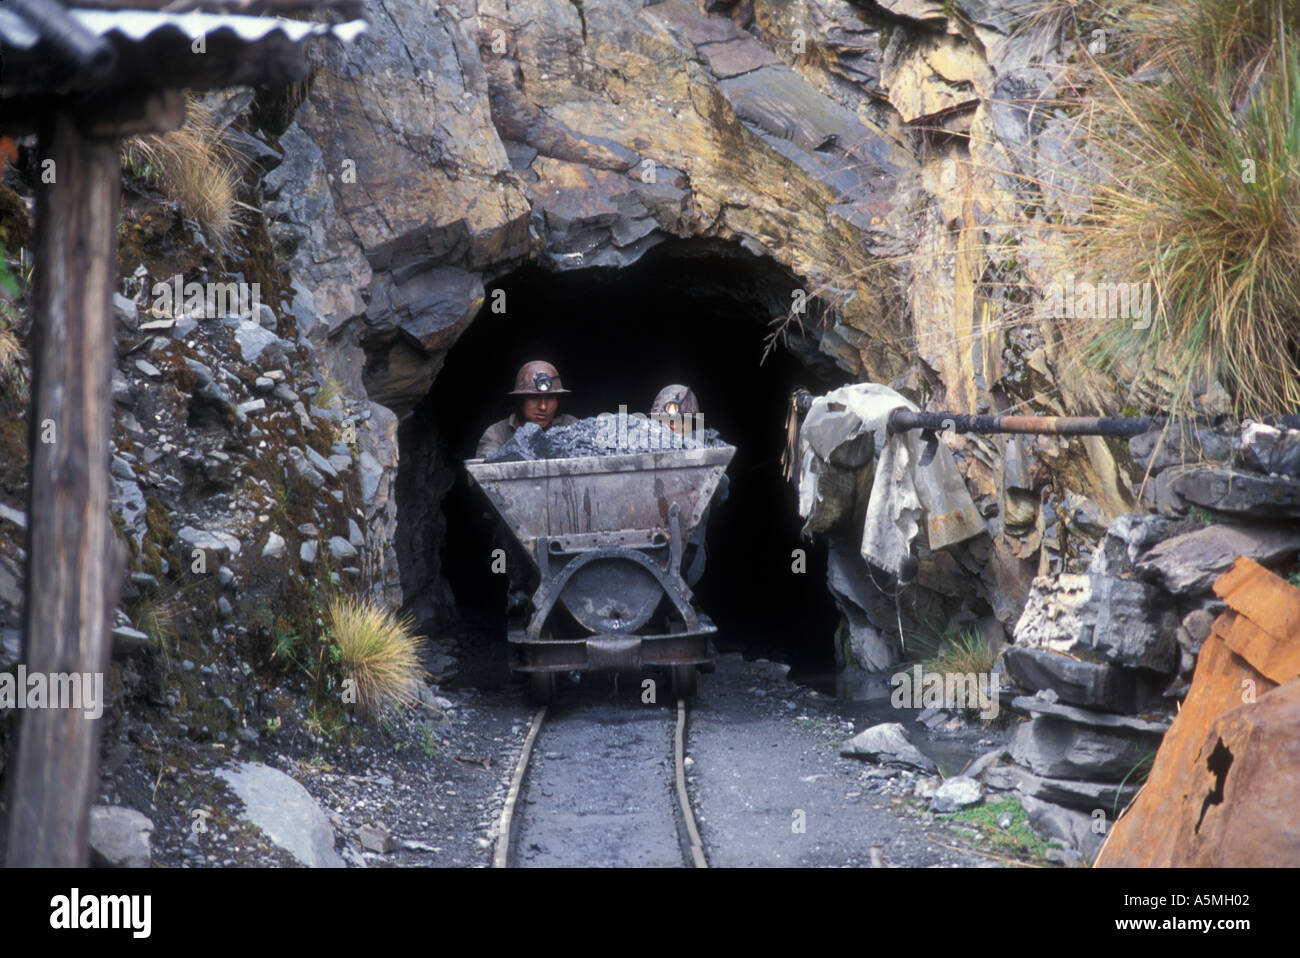 Goldminers push gravel cart out of tunnel appr 4500 Meters altitude Sorata Coop mining Cordillera Real Andes Bolivia - Stock Image